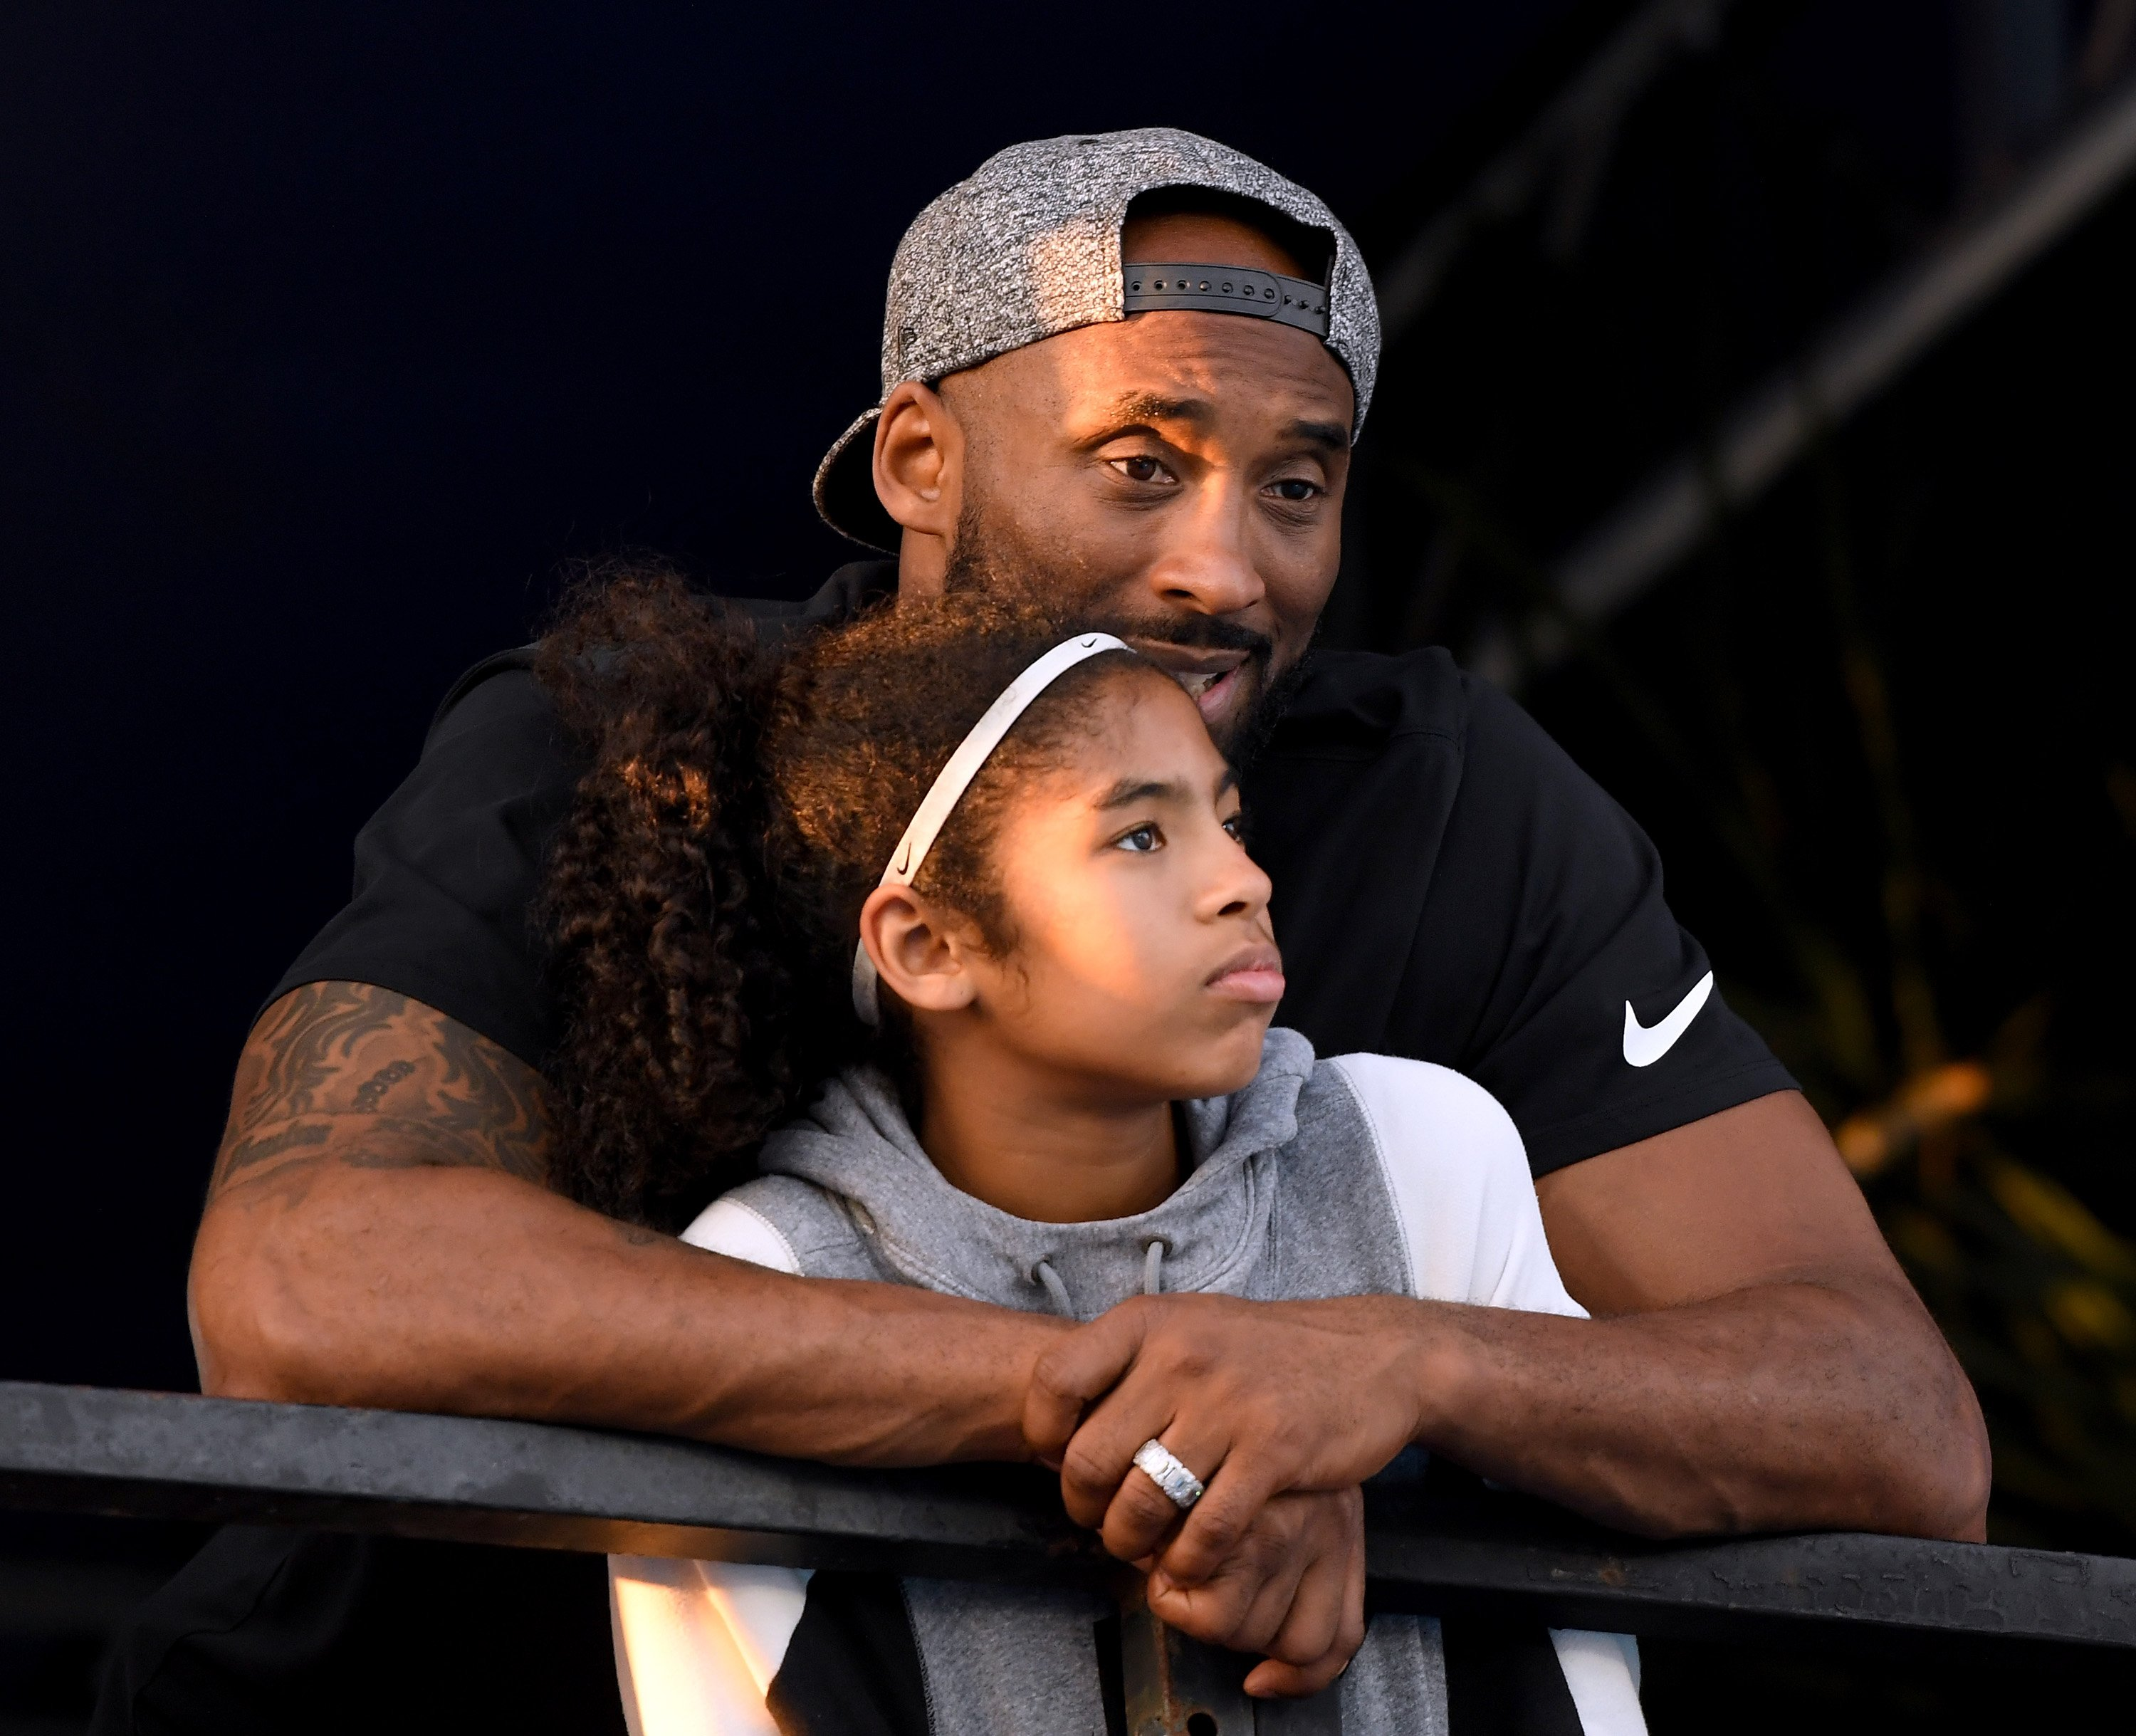 Image Source: Getty Images/Kobe Bryant and his daughter Gigi